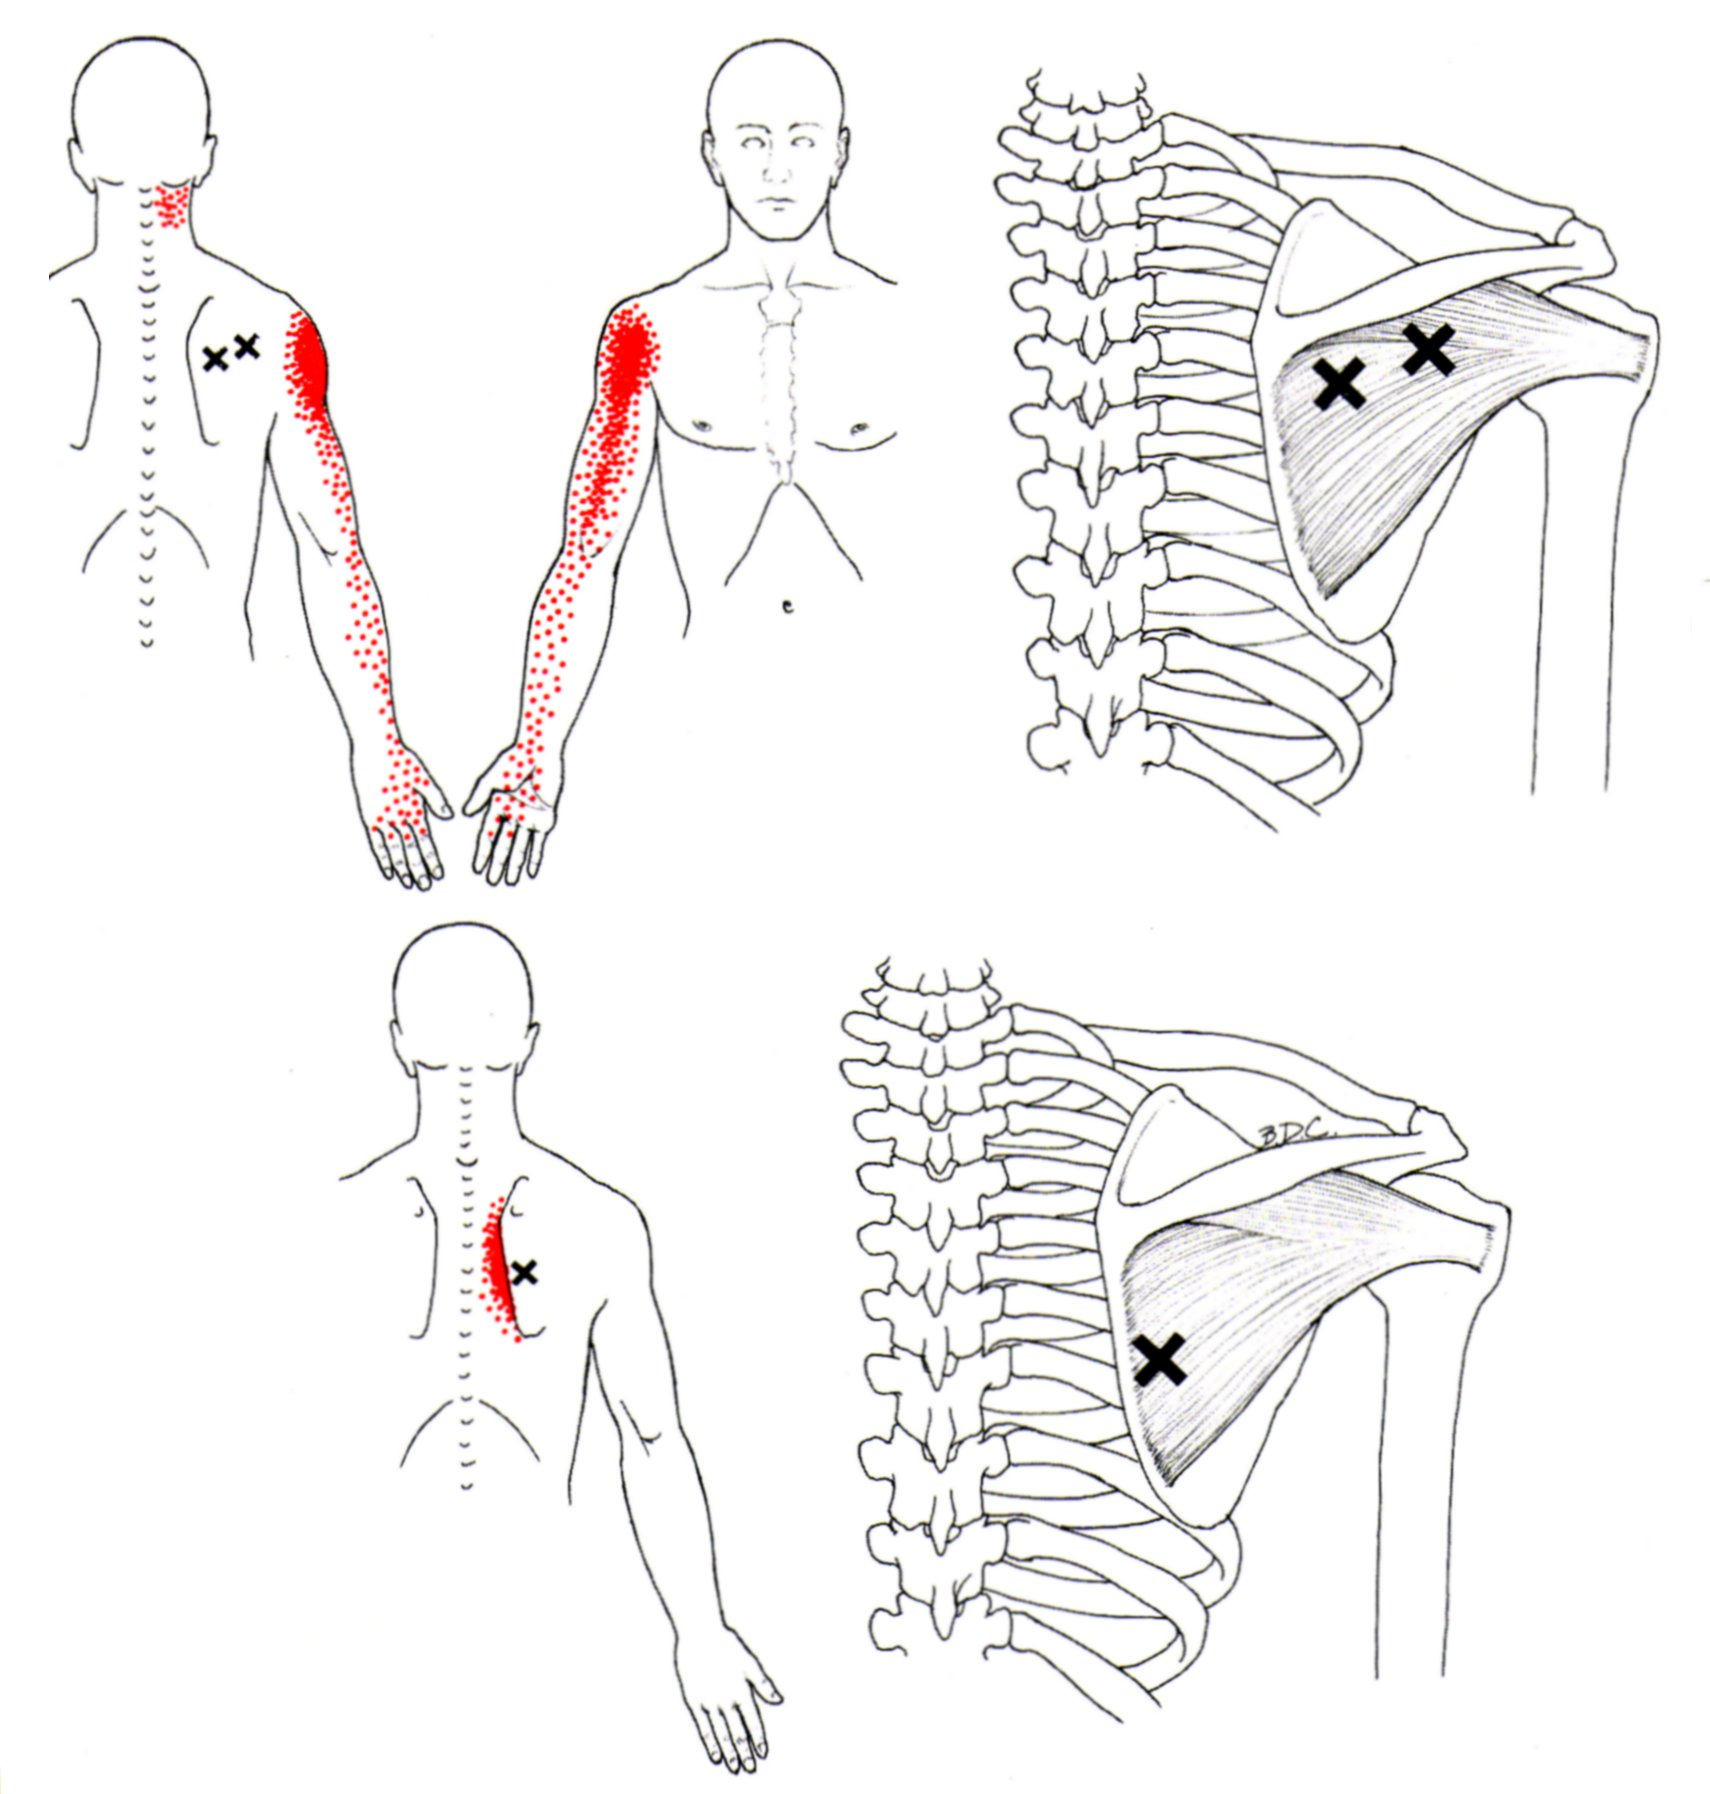 Infraspinatus & Teres Minor - Rotator Cuff - Yoga Anatomy